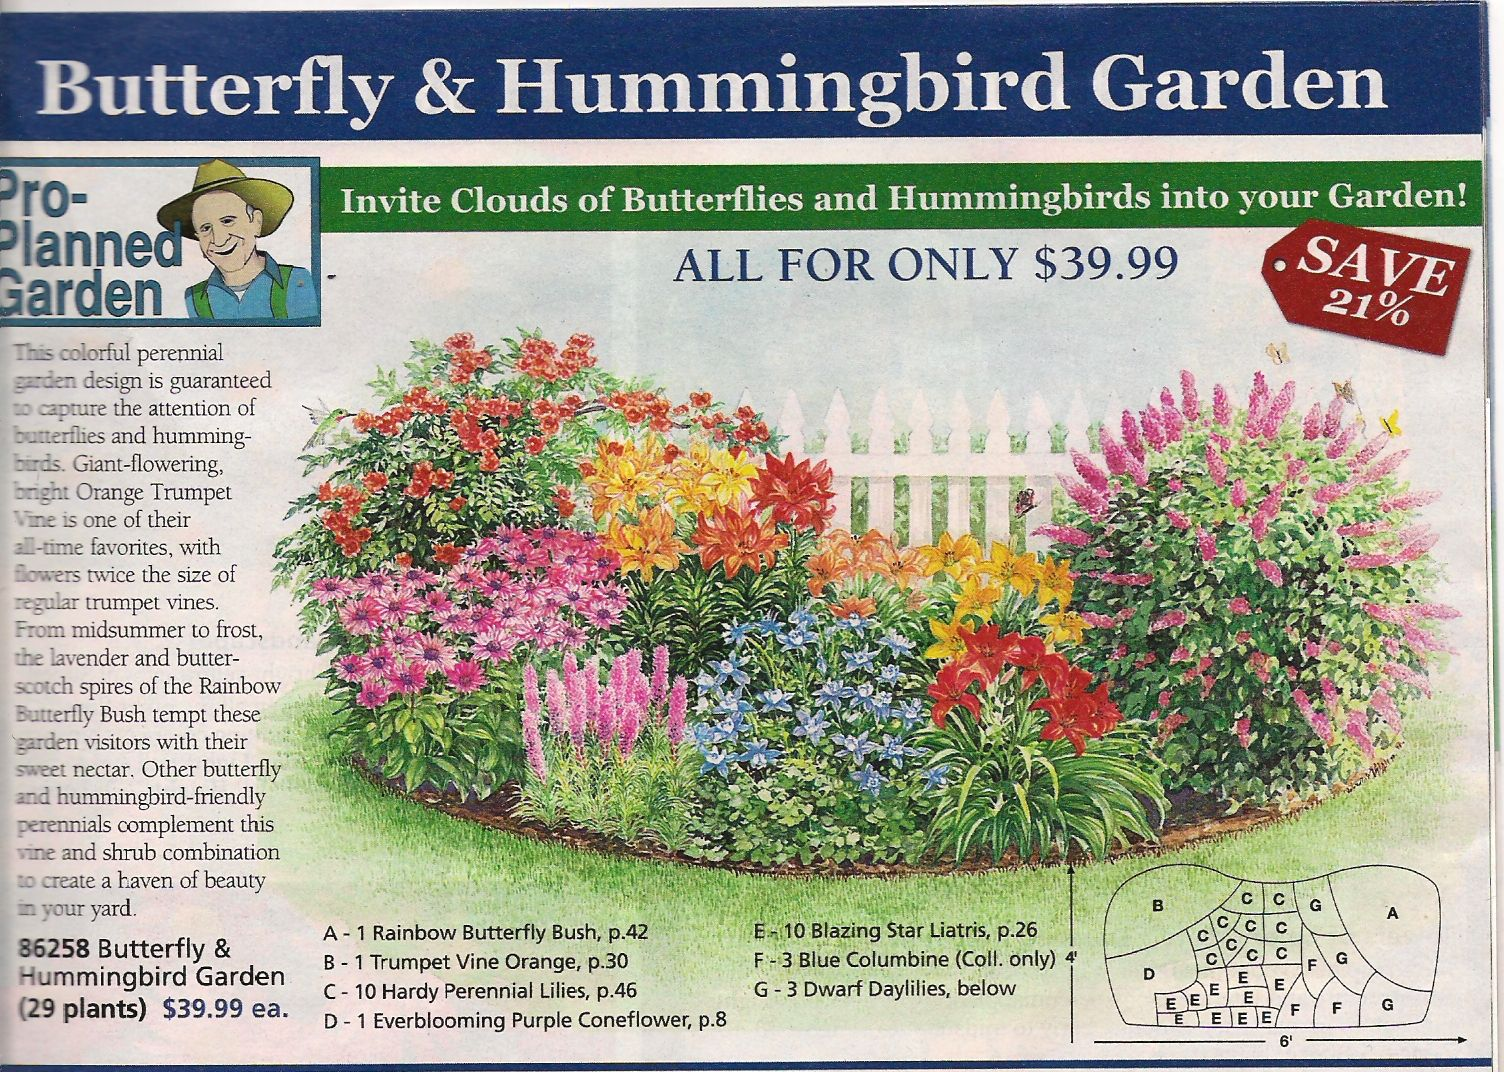 Garden plan from michigan bulb co for a butterfly garden for Flower garden plans and designs